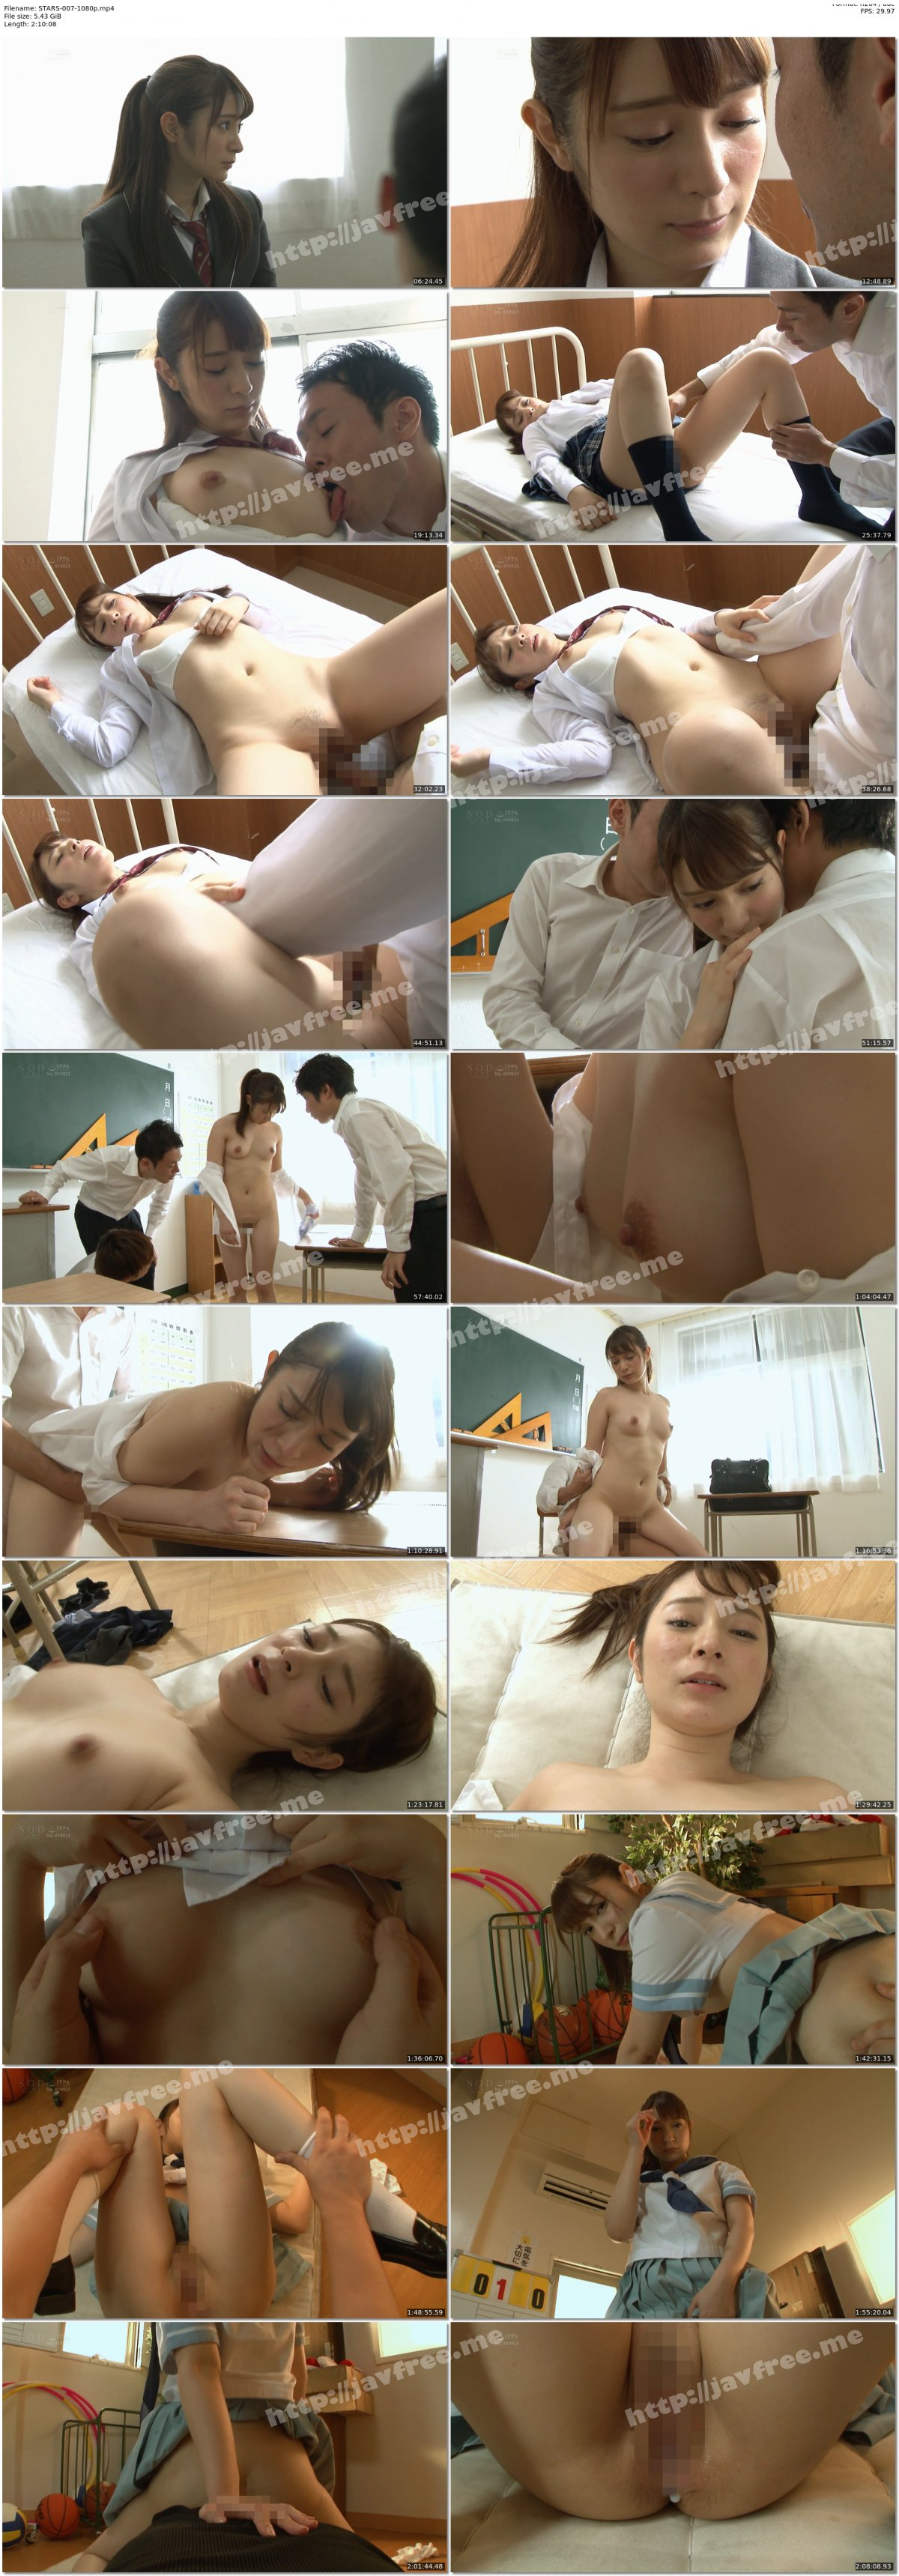 [HD][STARS-007] 成宮りか SODstar DEBUT! 中出し解禁 計6発 - image STARS-007-1080p on https://javfree.me